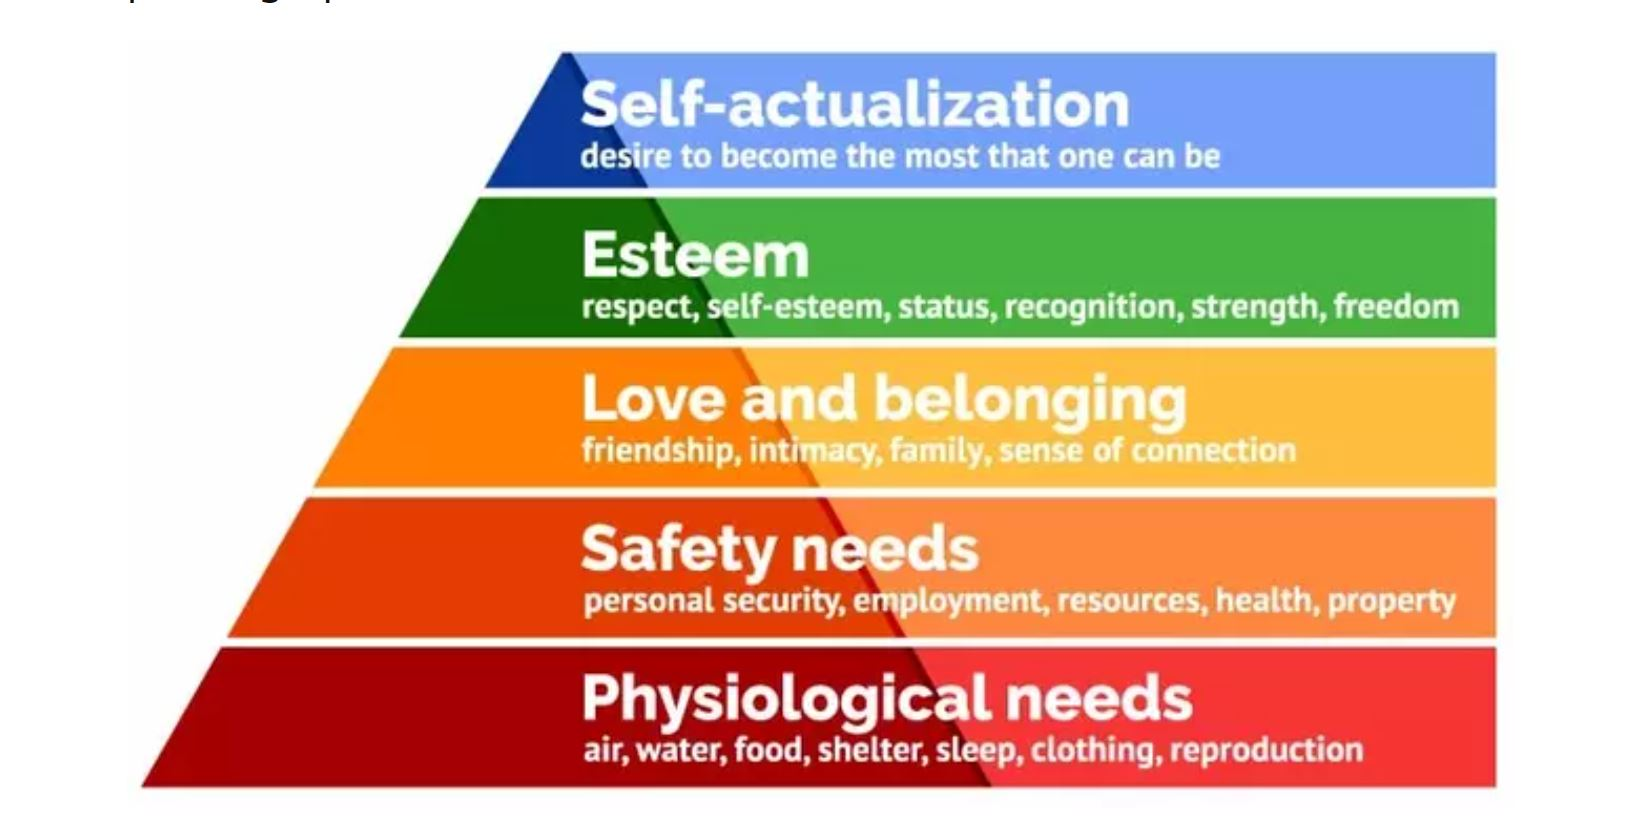 Pyramid illustration of Maslow's hierarchy of needs